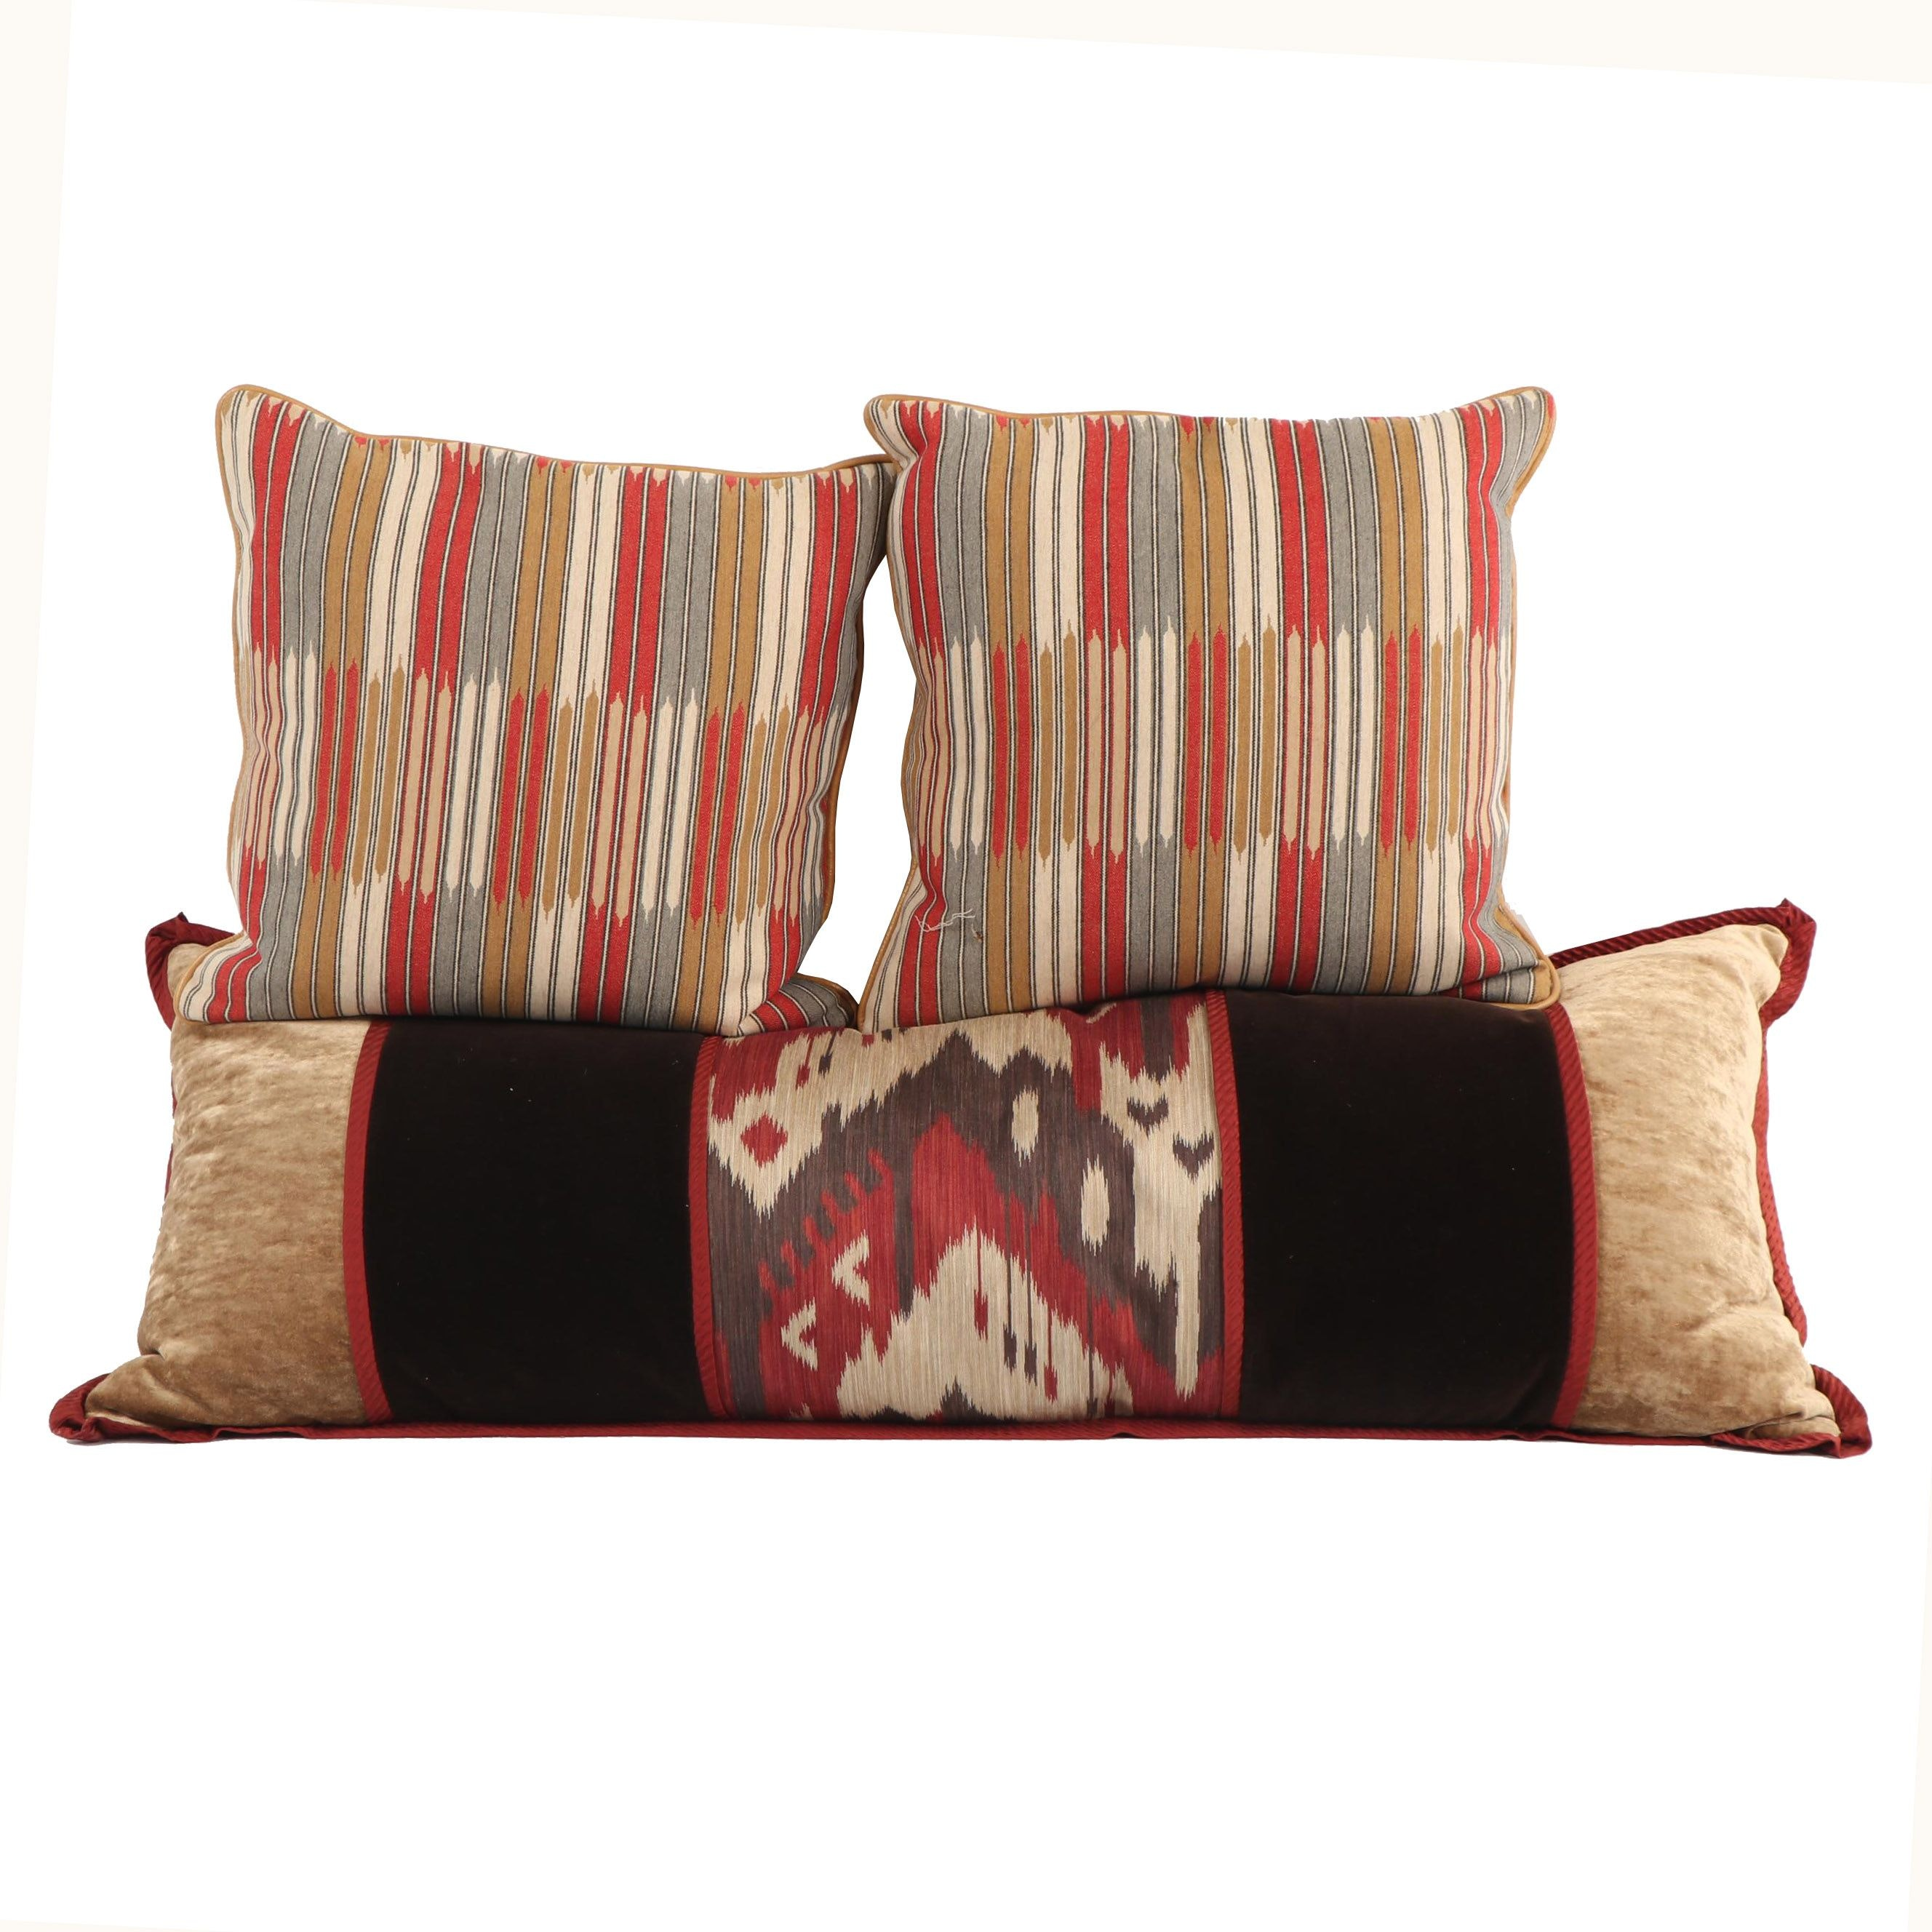 Custom Bed Bolster and Accent Pillows including Ikat Pattern